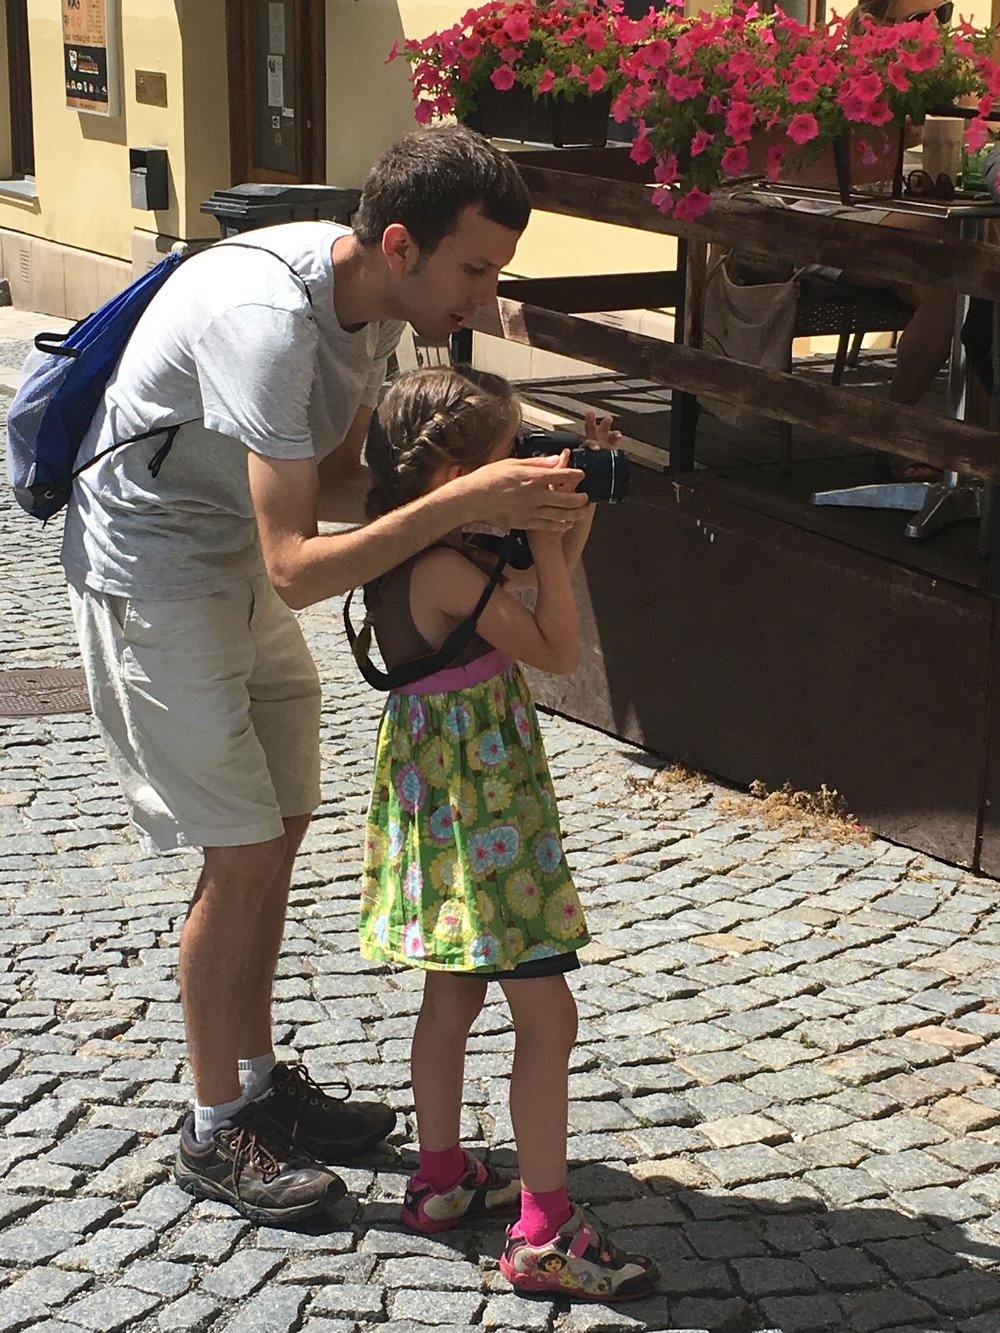 Our good friend Devin showing Nora how to use the camera. It was great having him out here to visit on his short term mission trip.